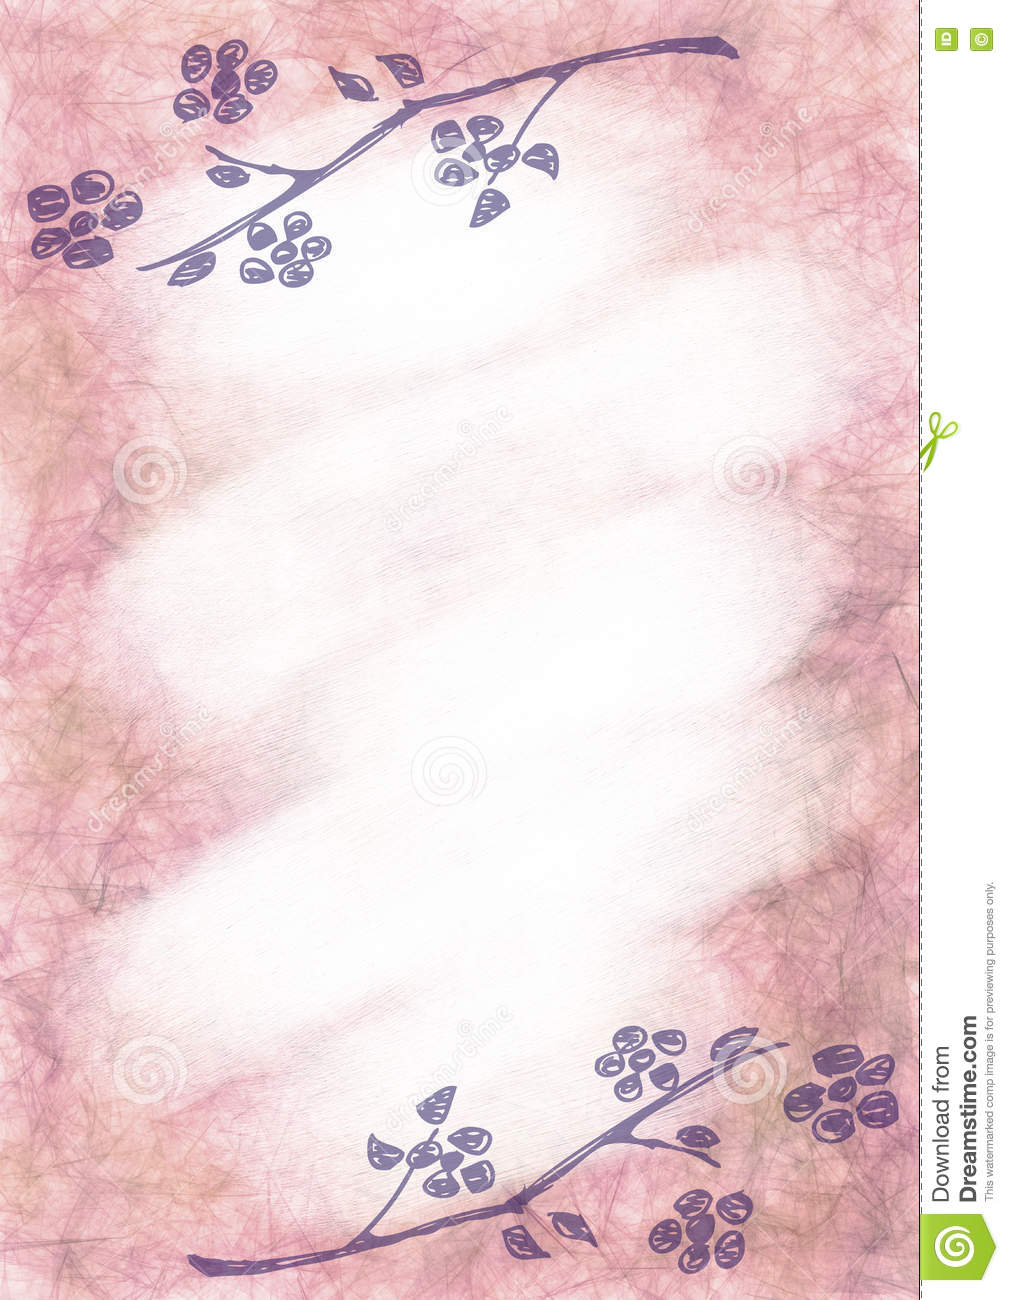 Hand Drawn Textured Floral Background  Vintage Card With